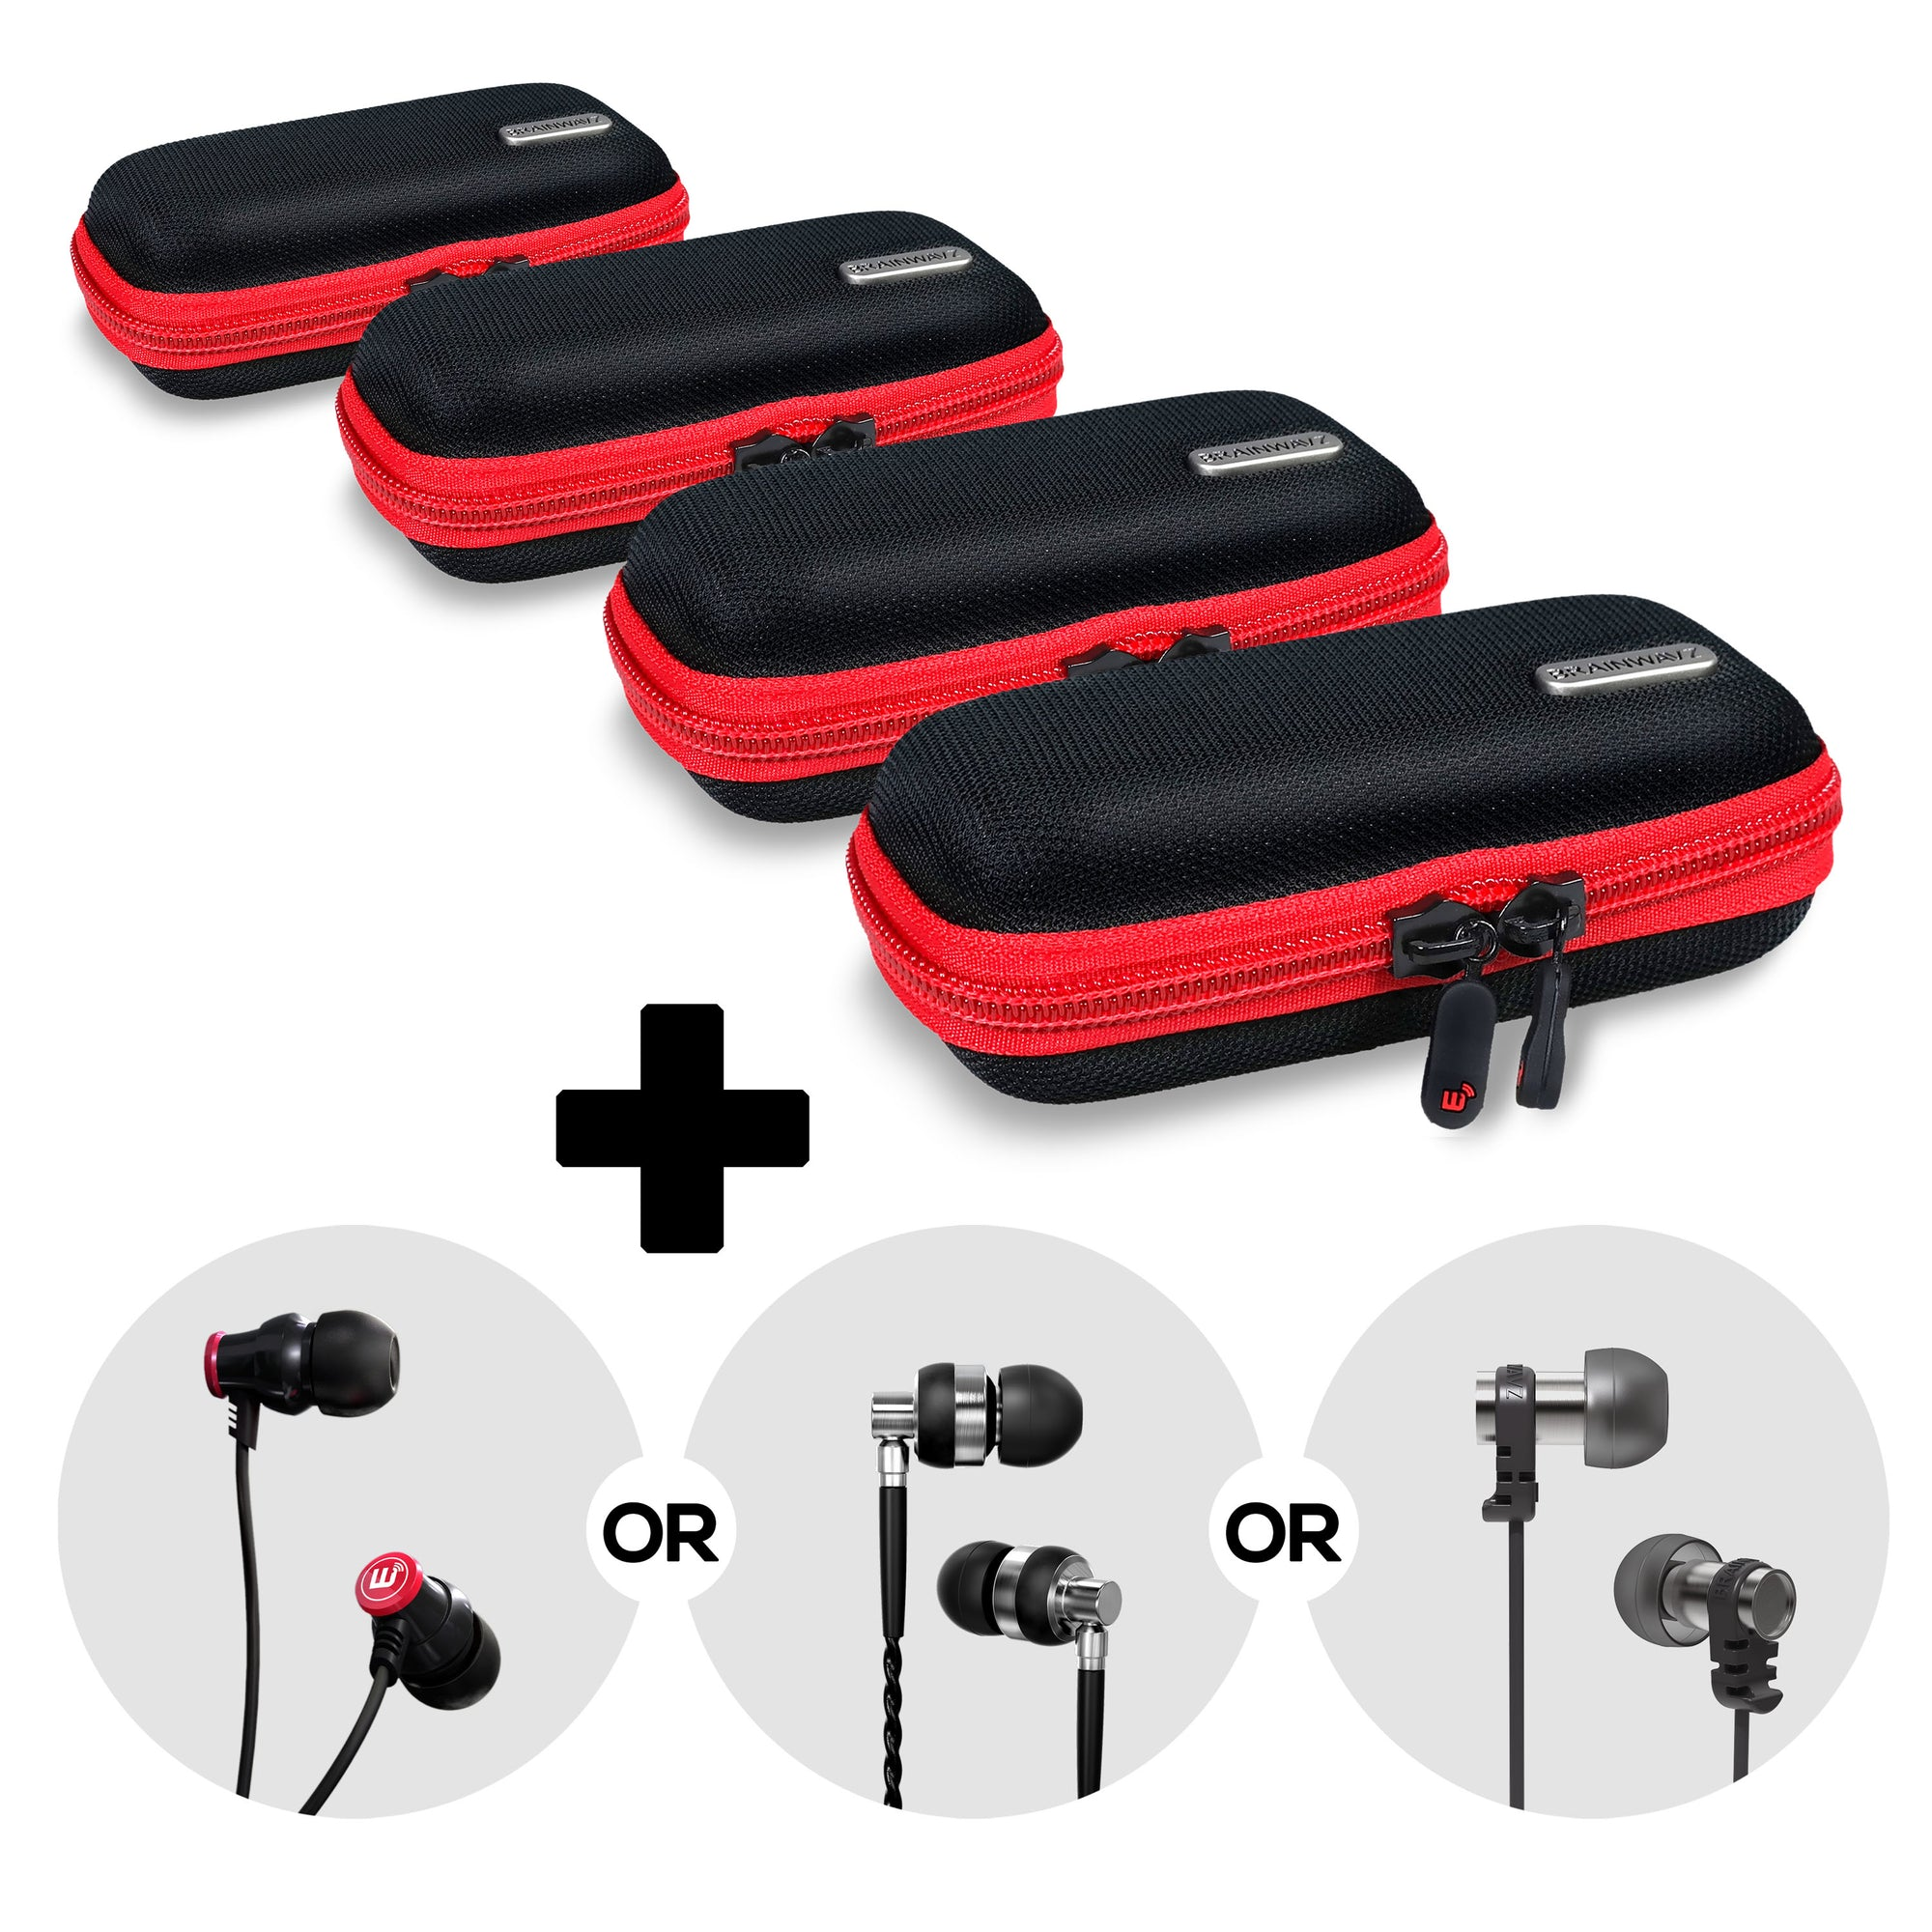 Wide Earphone Case Four Pack + Random Set of Earbuds - Bundle Deal